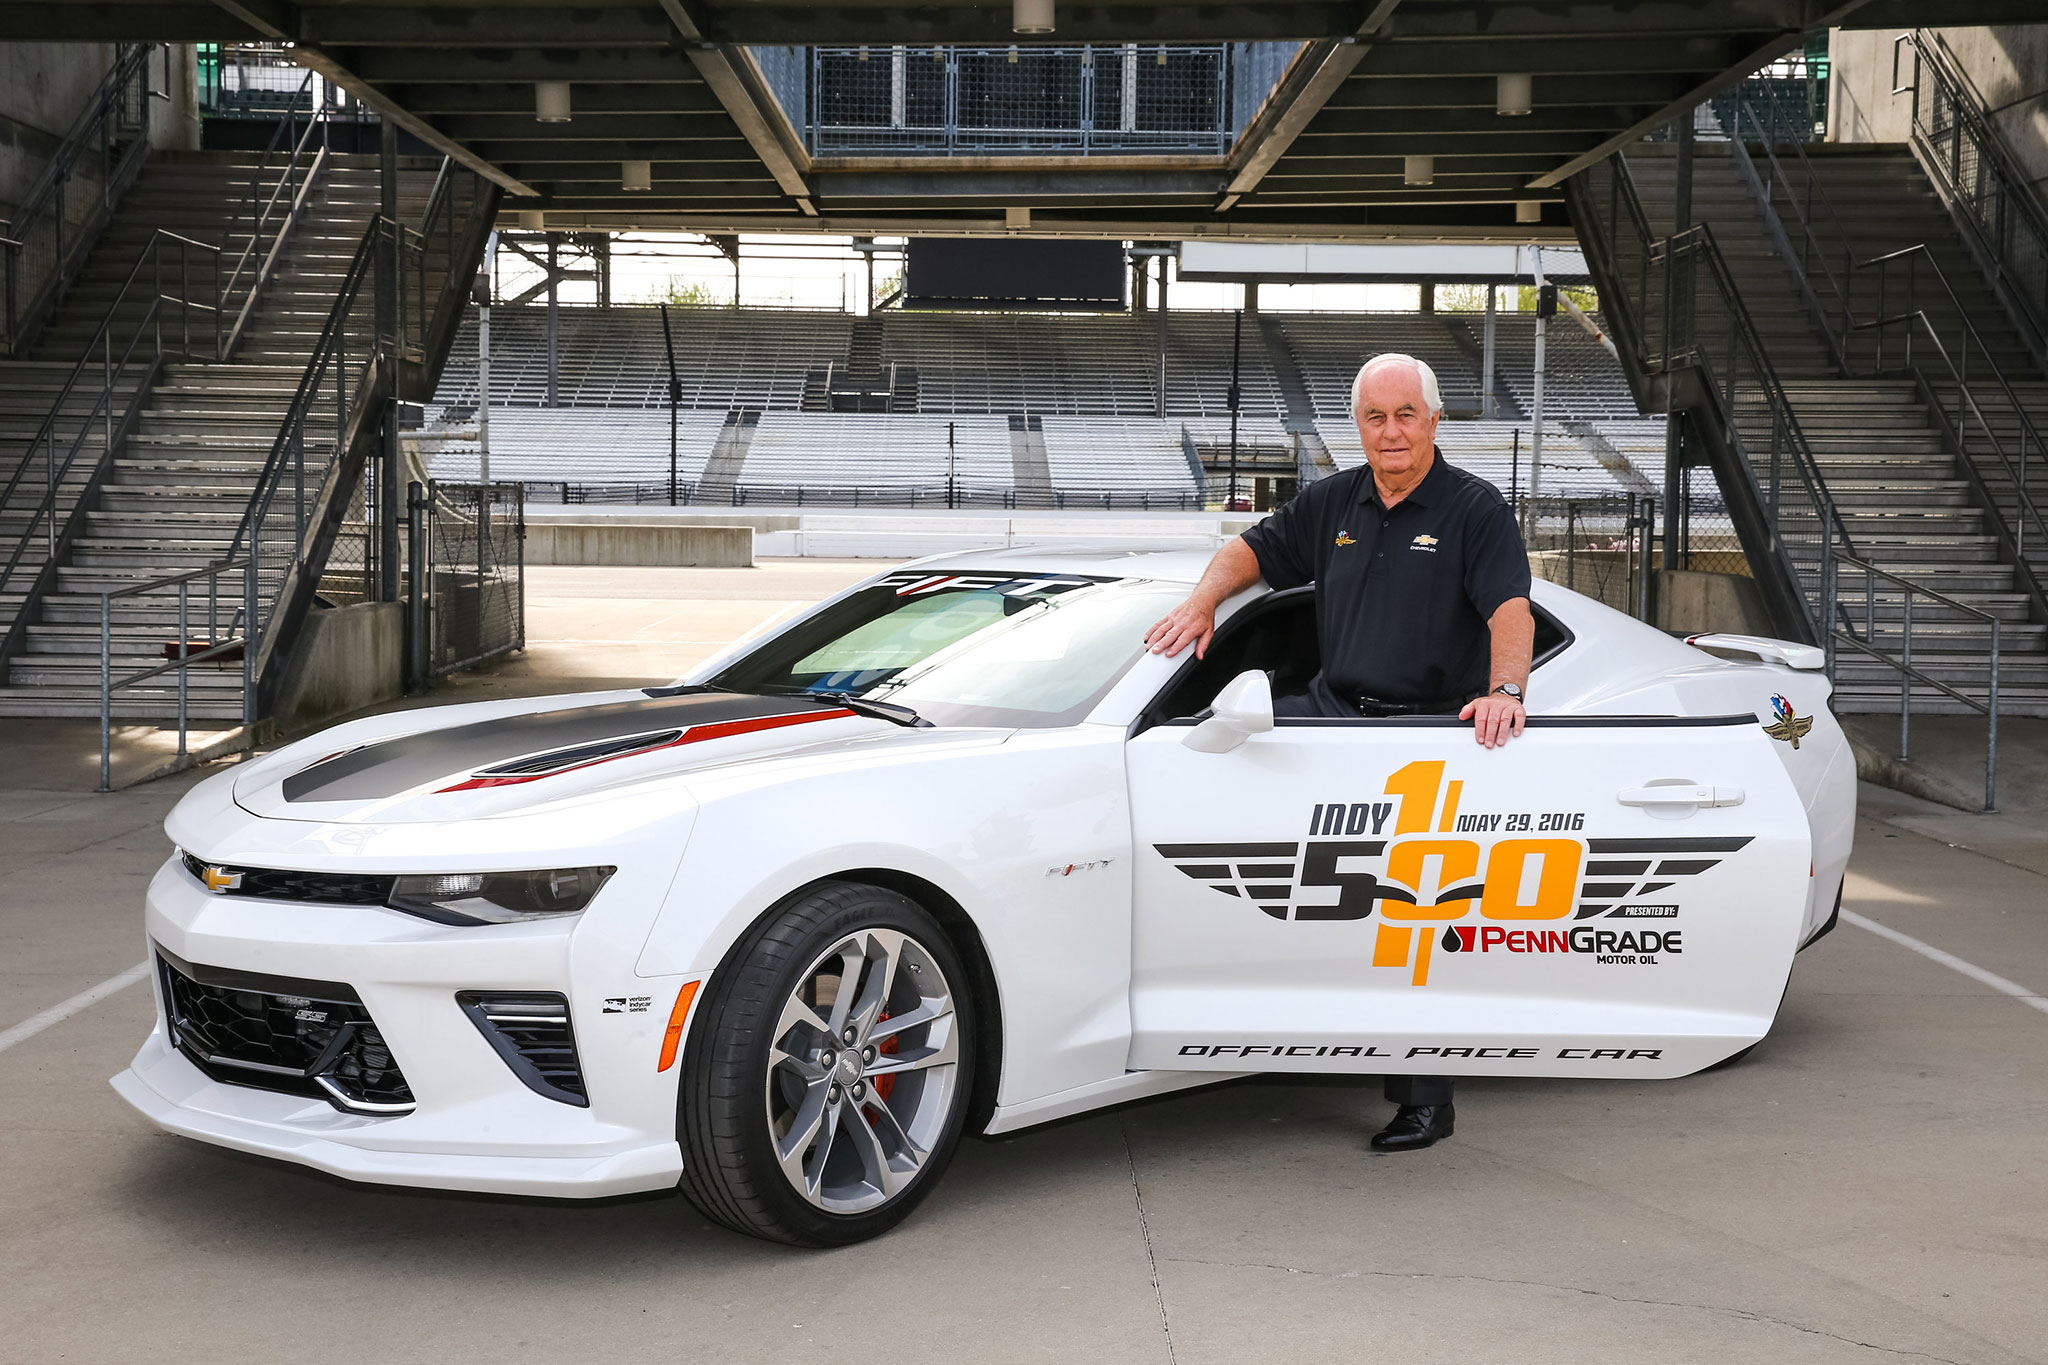 2017 Chevrolet Camaro Ss 50th Anniversary To Pace Indianapolis 500